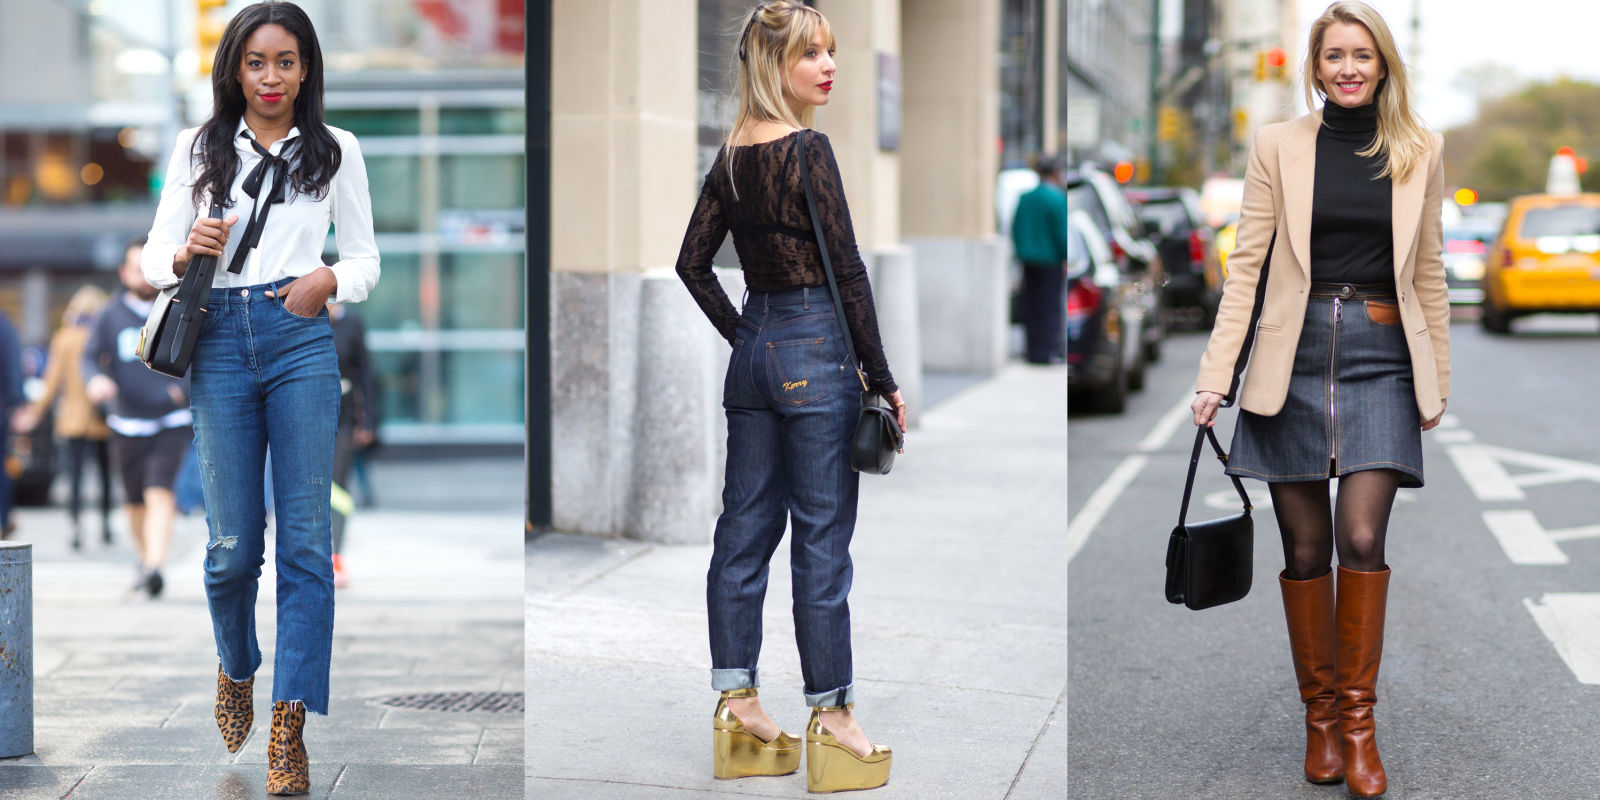 High Waisted Jeans Back In Style - Jeans Am